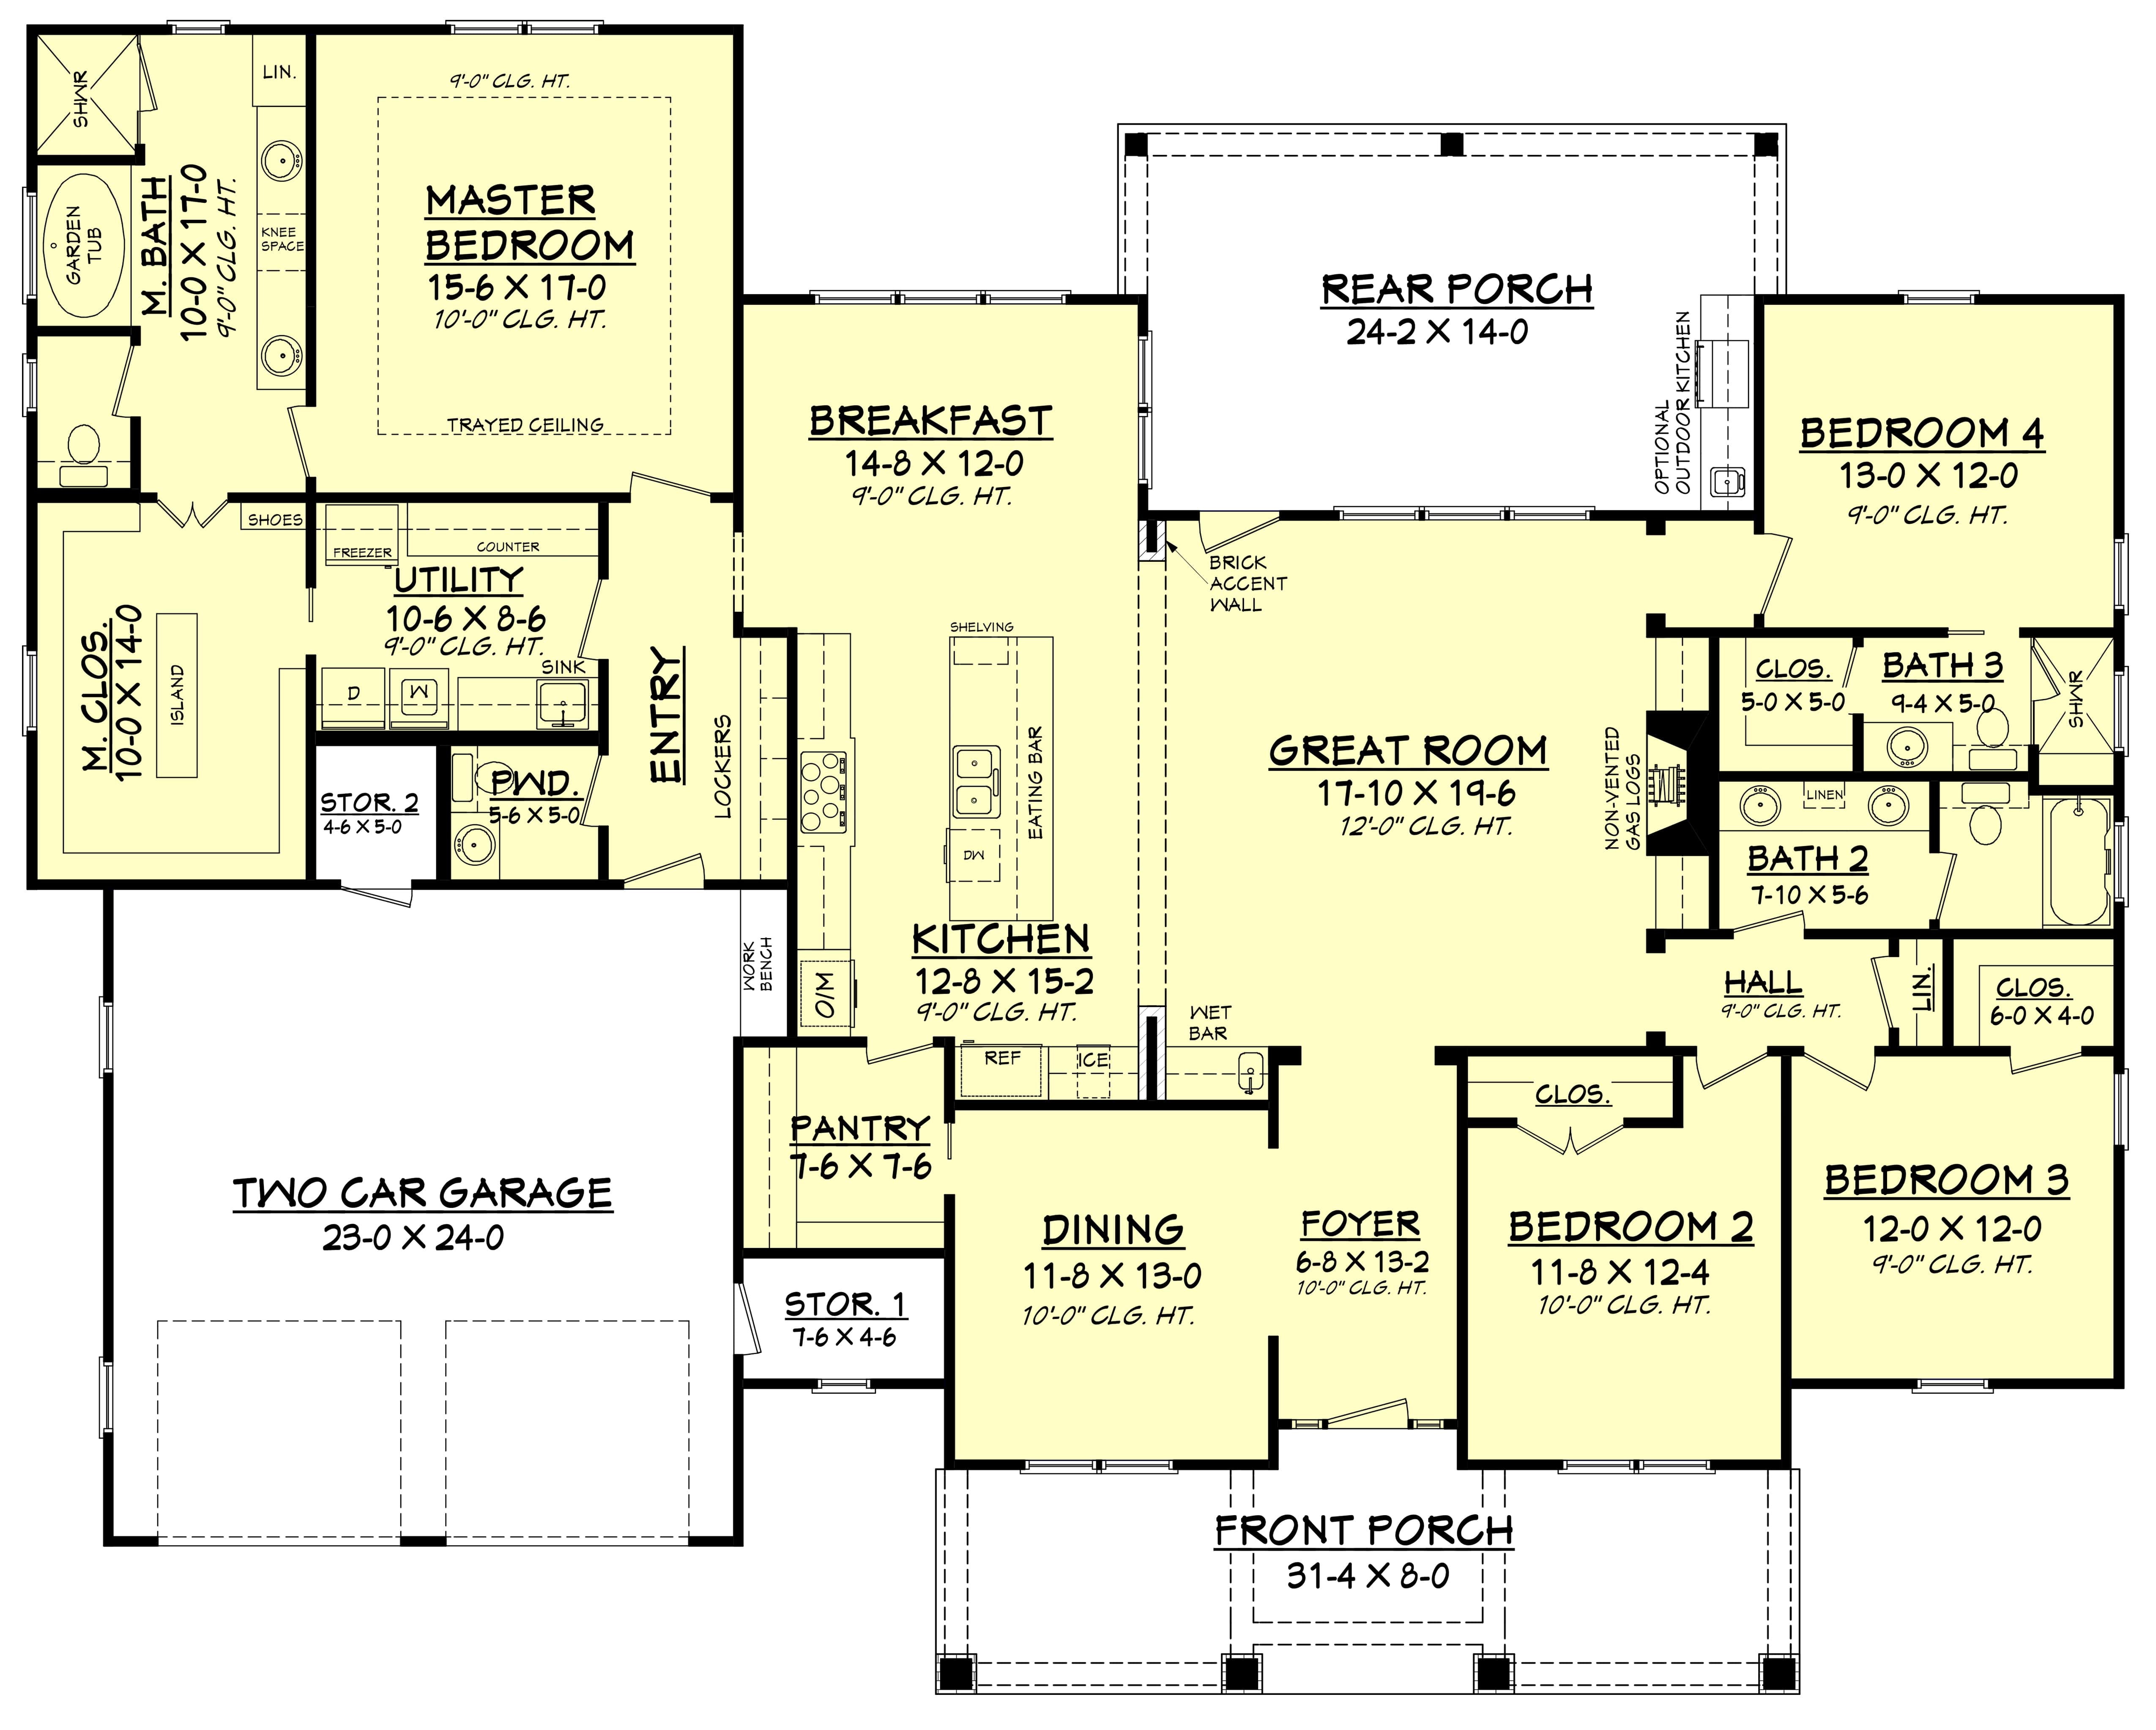 4 bedrm 2759 sq ft country house plan 142 1181 Ten bedroom house plans